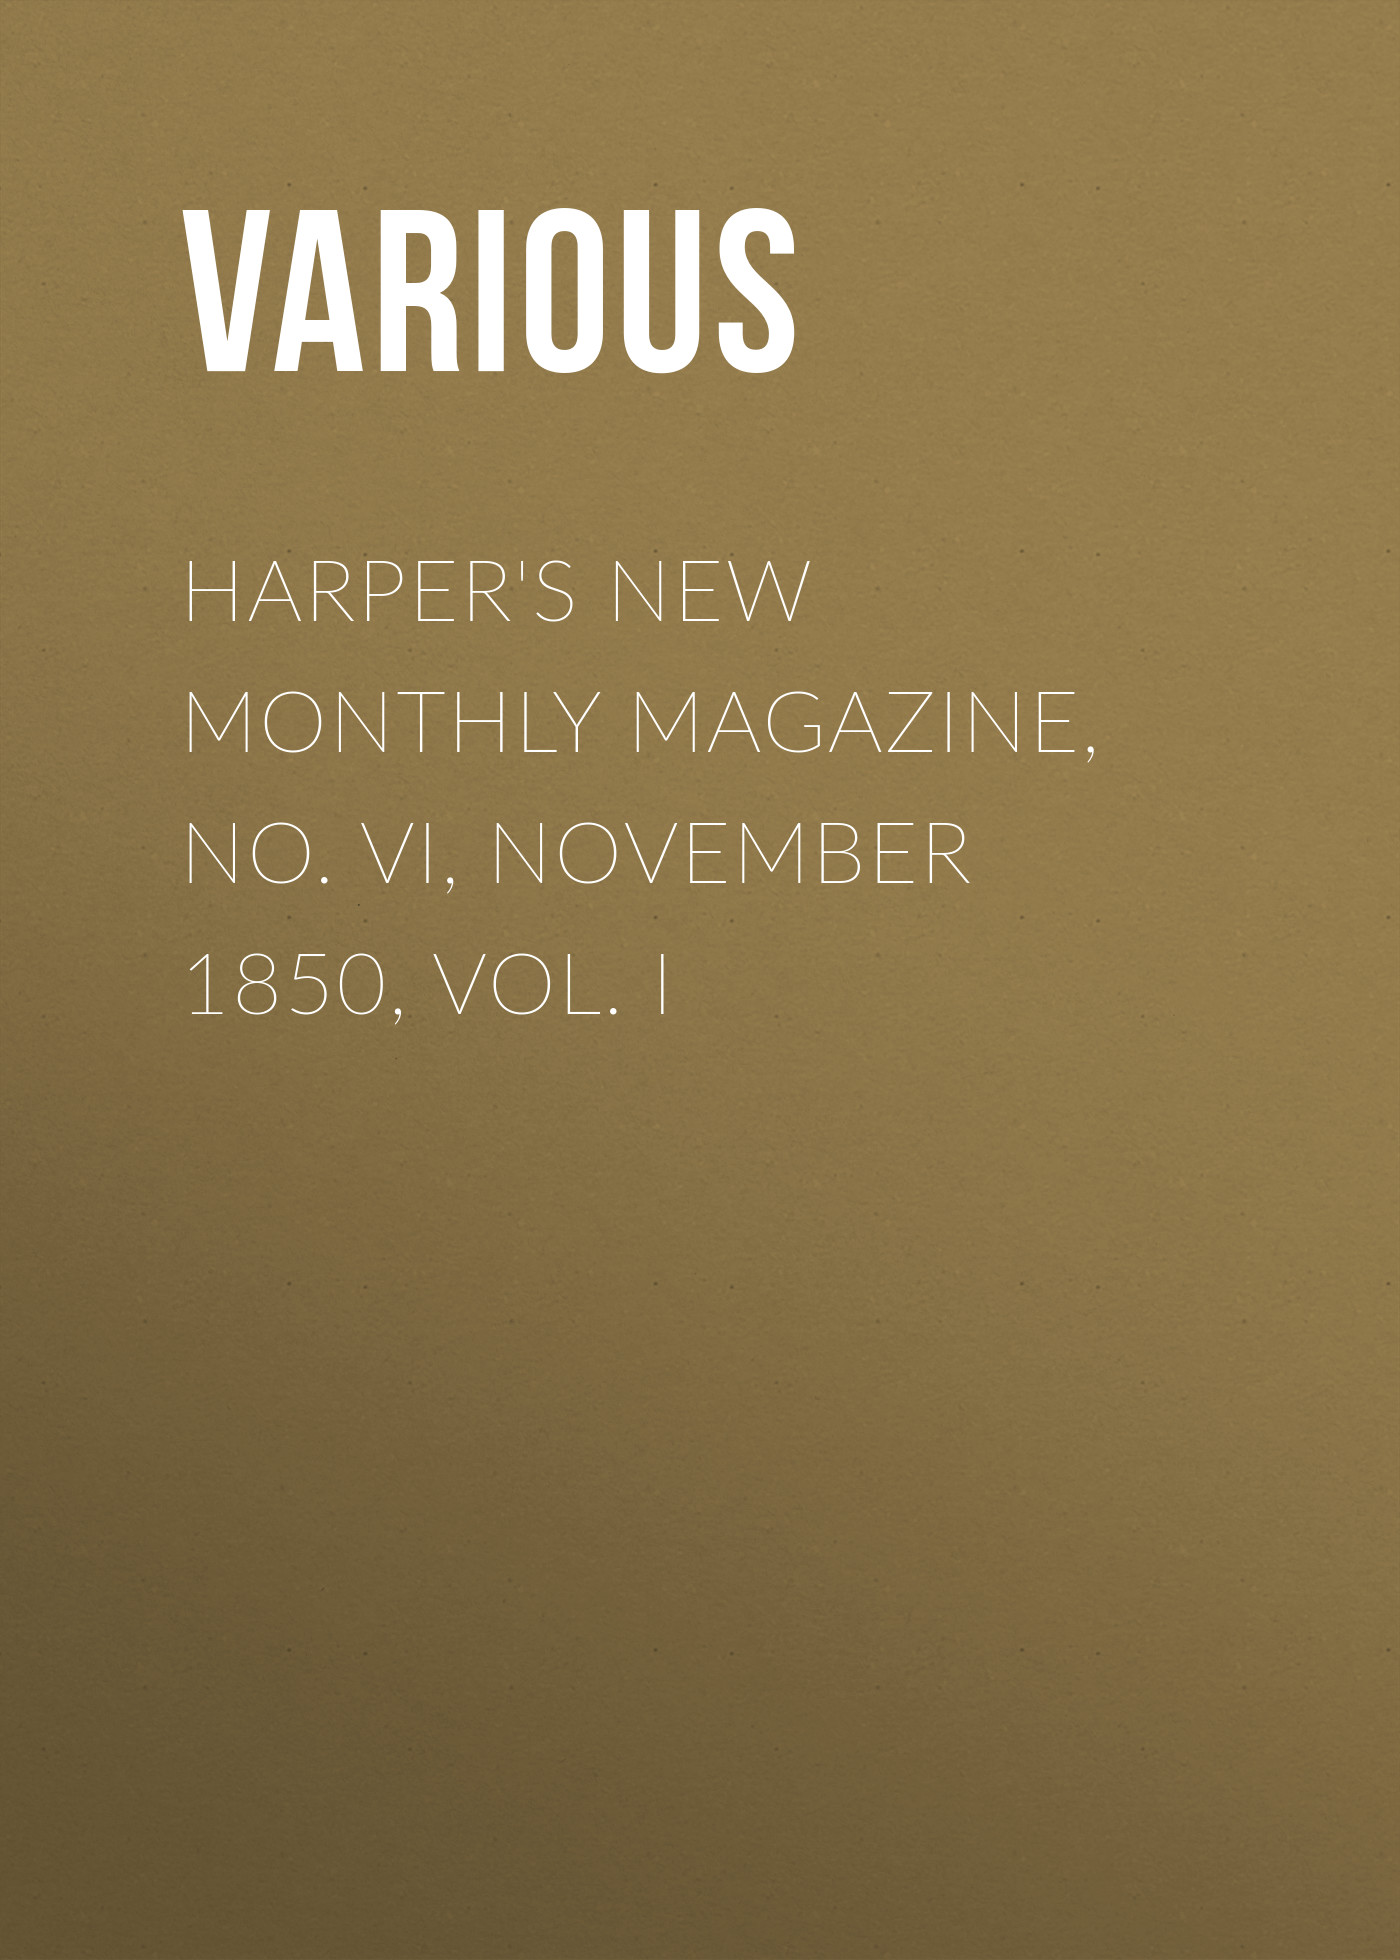 Various Harper's New Monthly Magazine, No. VI, November 1850, Vol. I various harper s new monthly magazine vol iv no xx january 1852